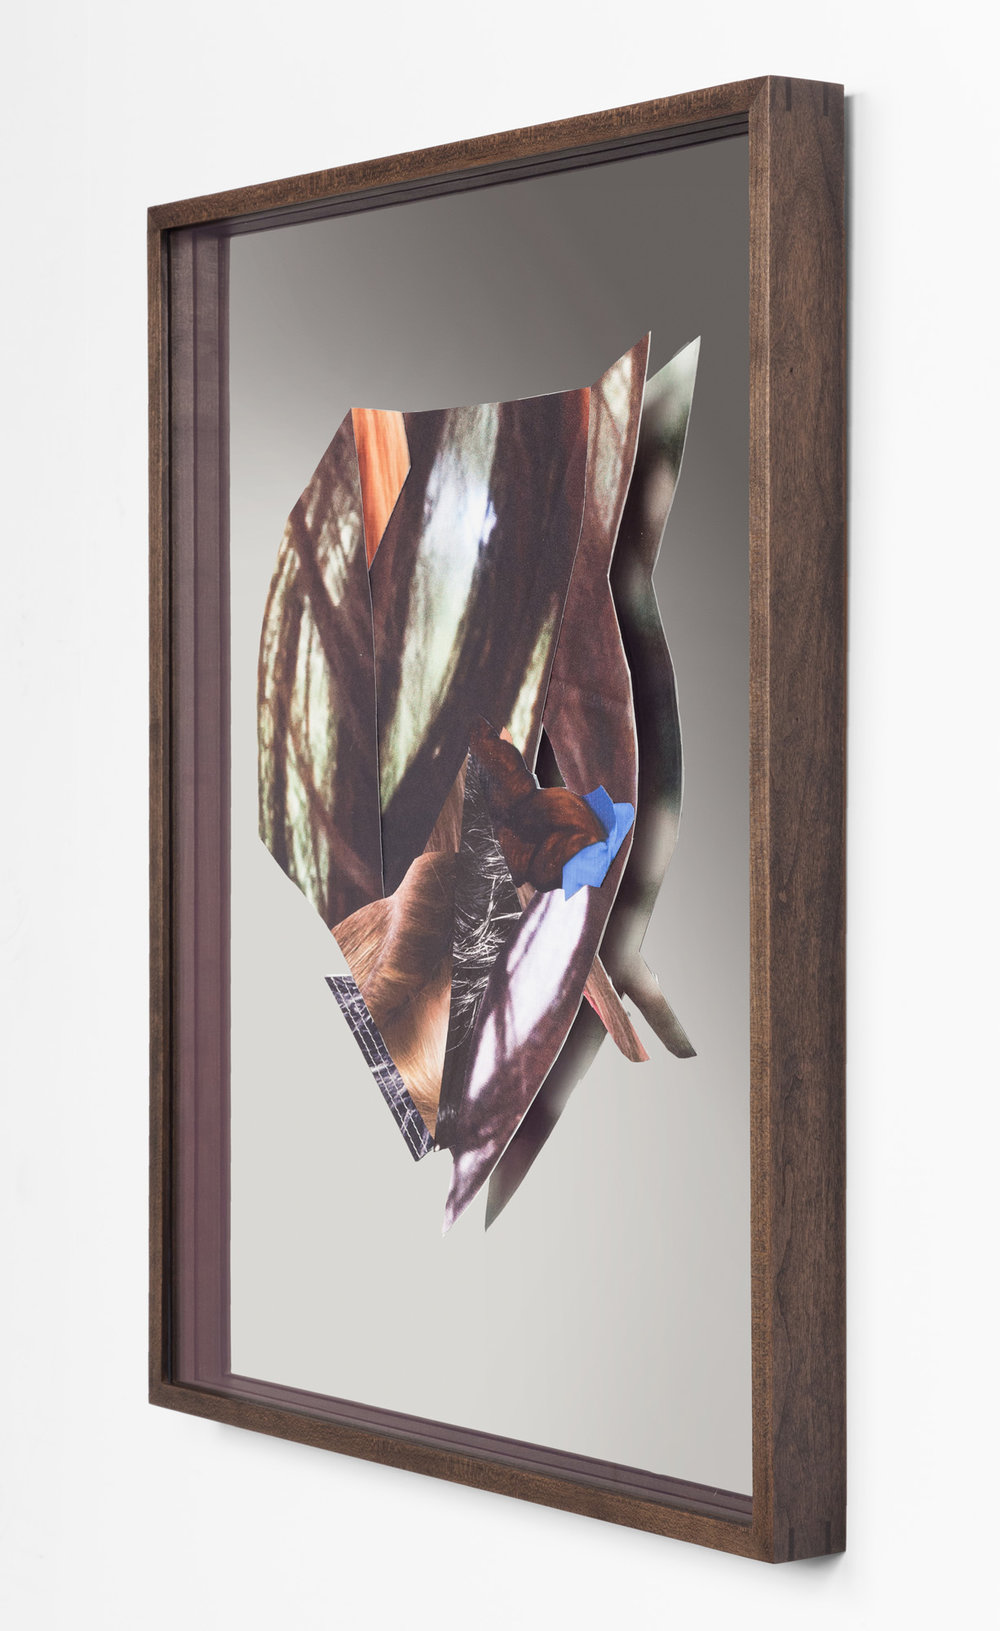 "Kelly Jazvac  Portrait of a Landscape , 2016 Salvaged billboards, adhesive, mirror, custom frame, 24"" x 19"" x 2"" Series of 6 works"